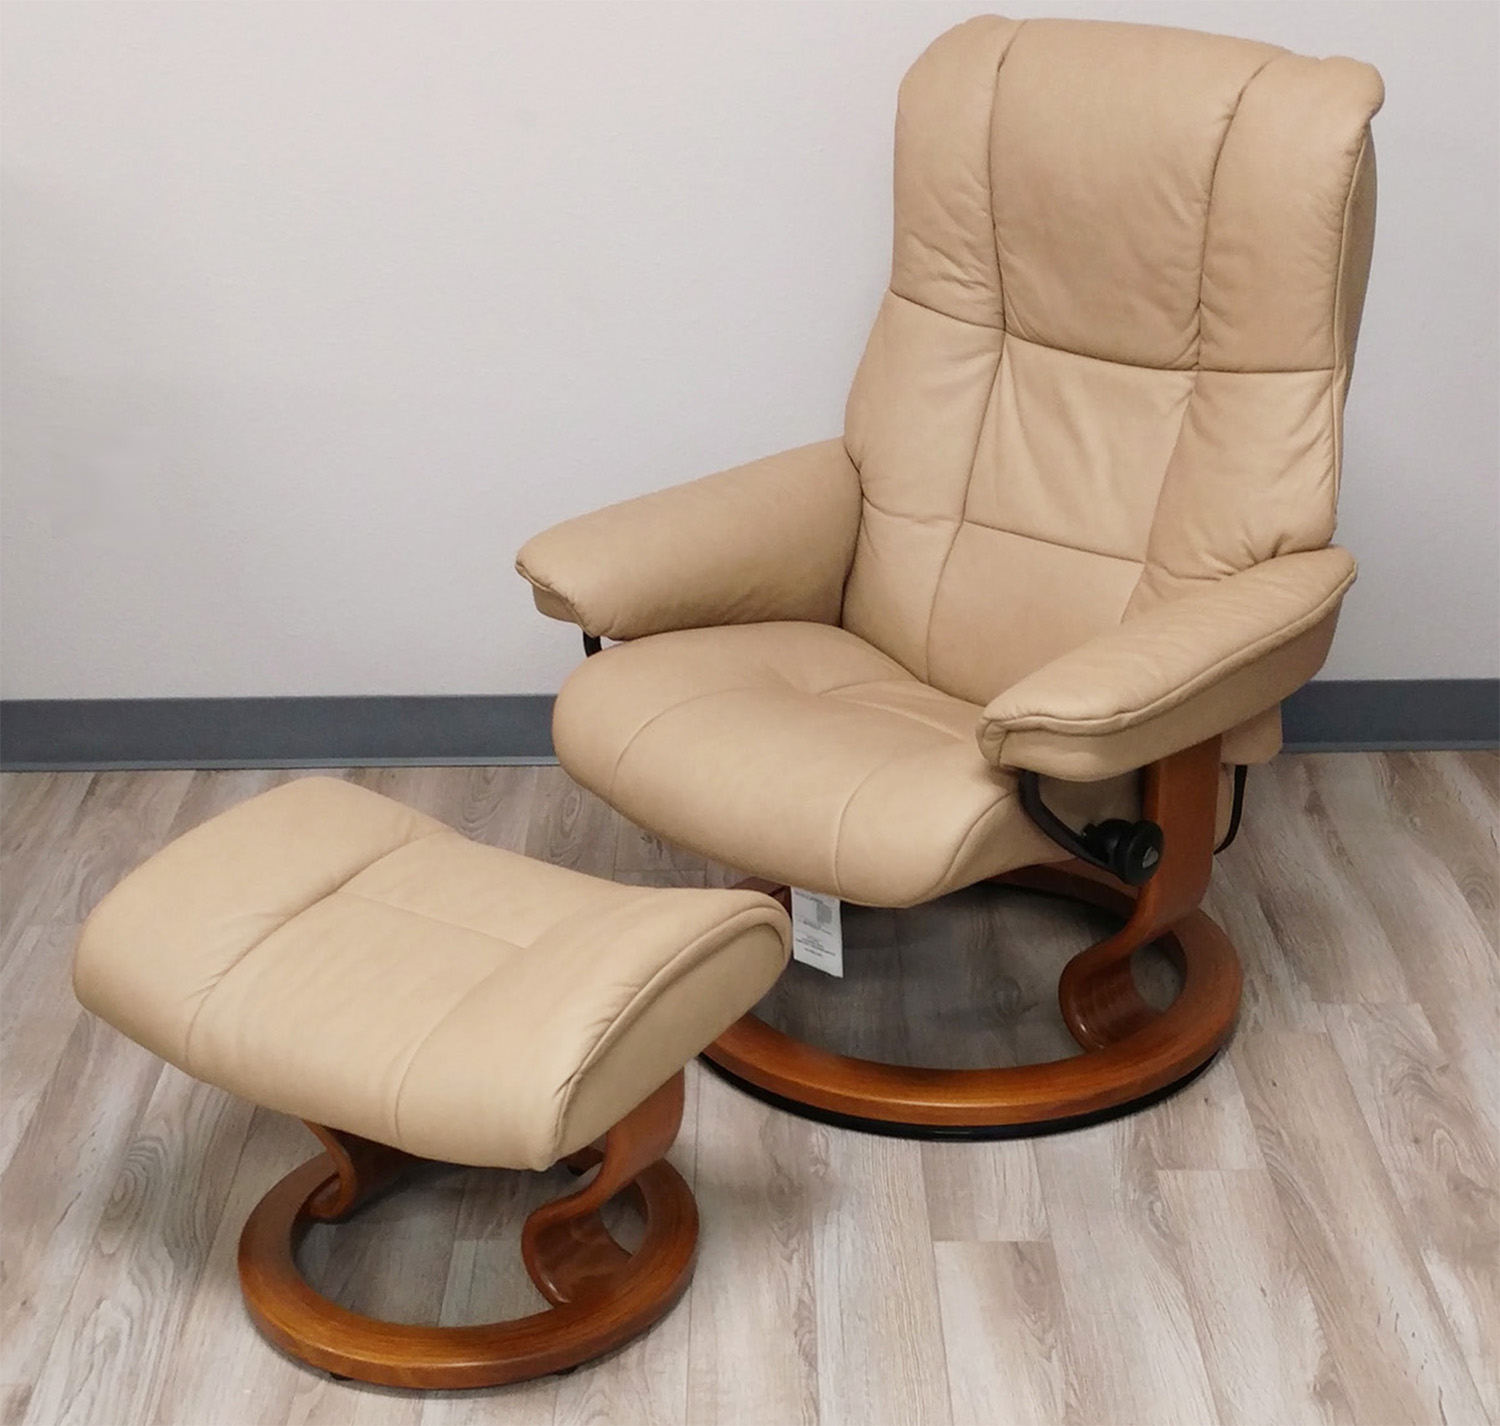 stressless mayfair paloma sand leather recliner chair by ekornes